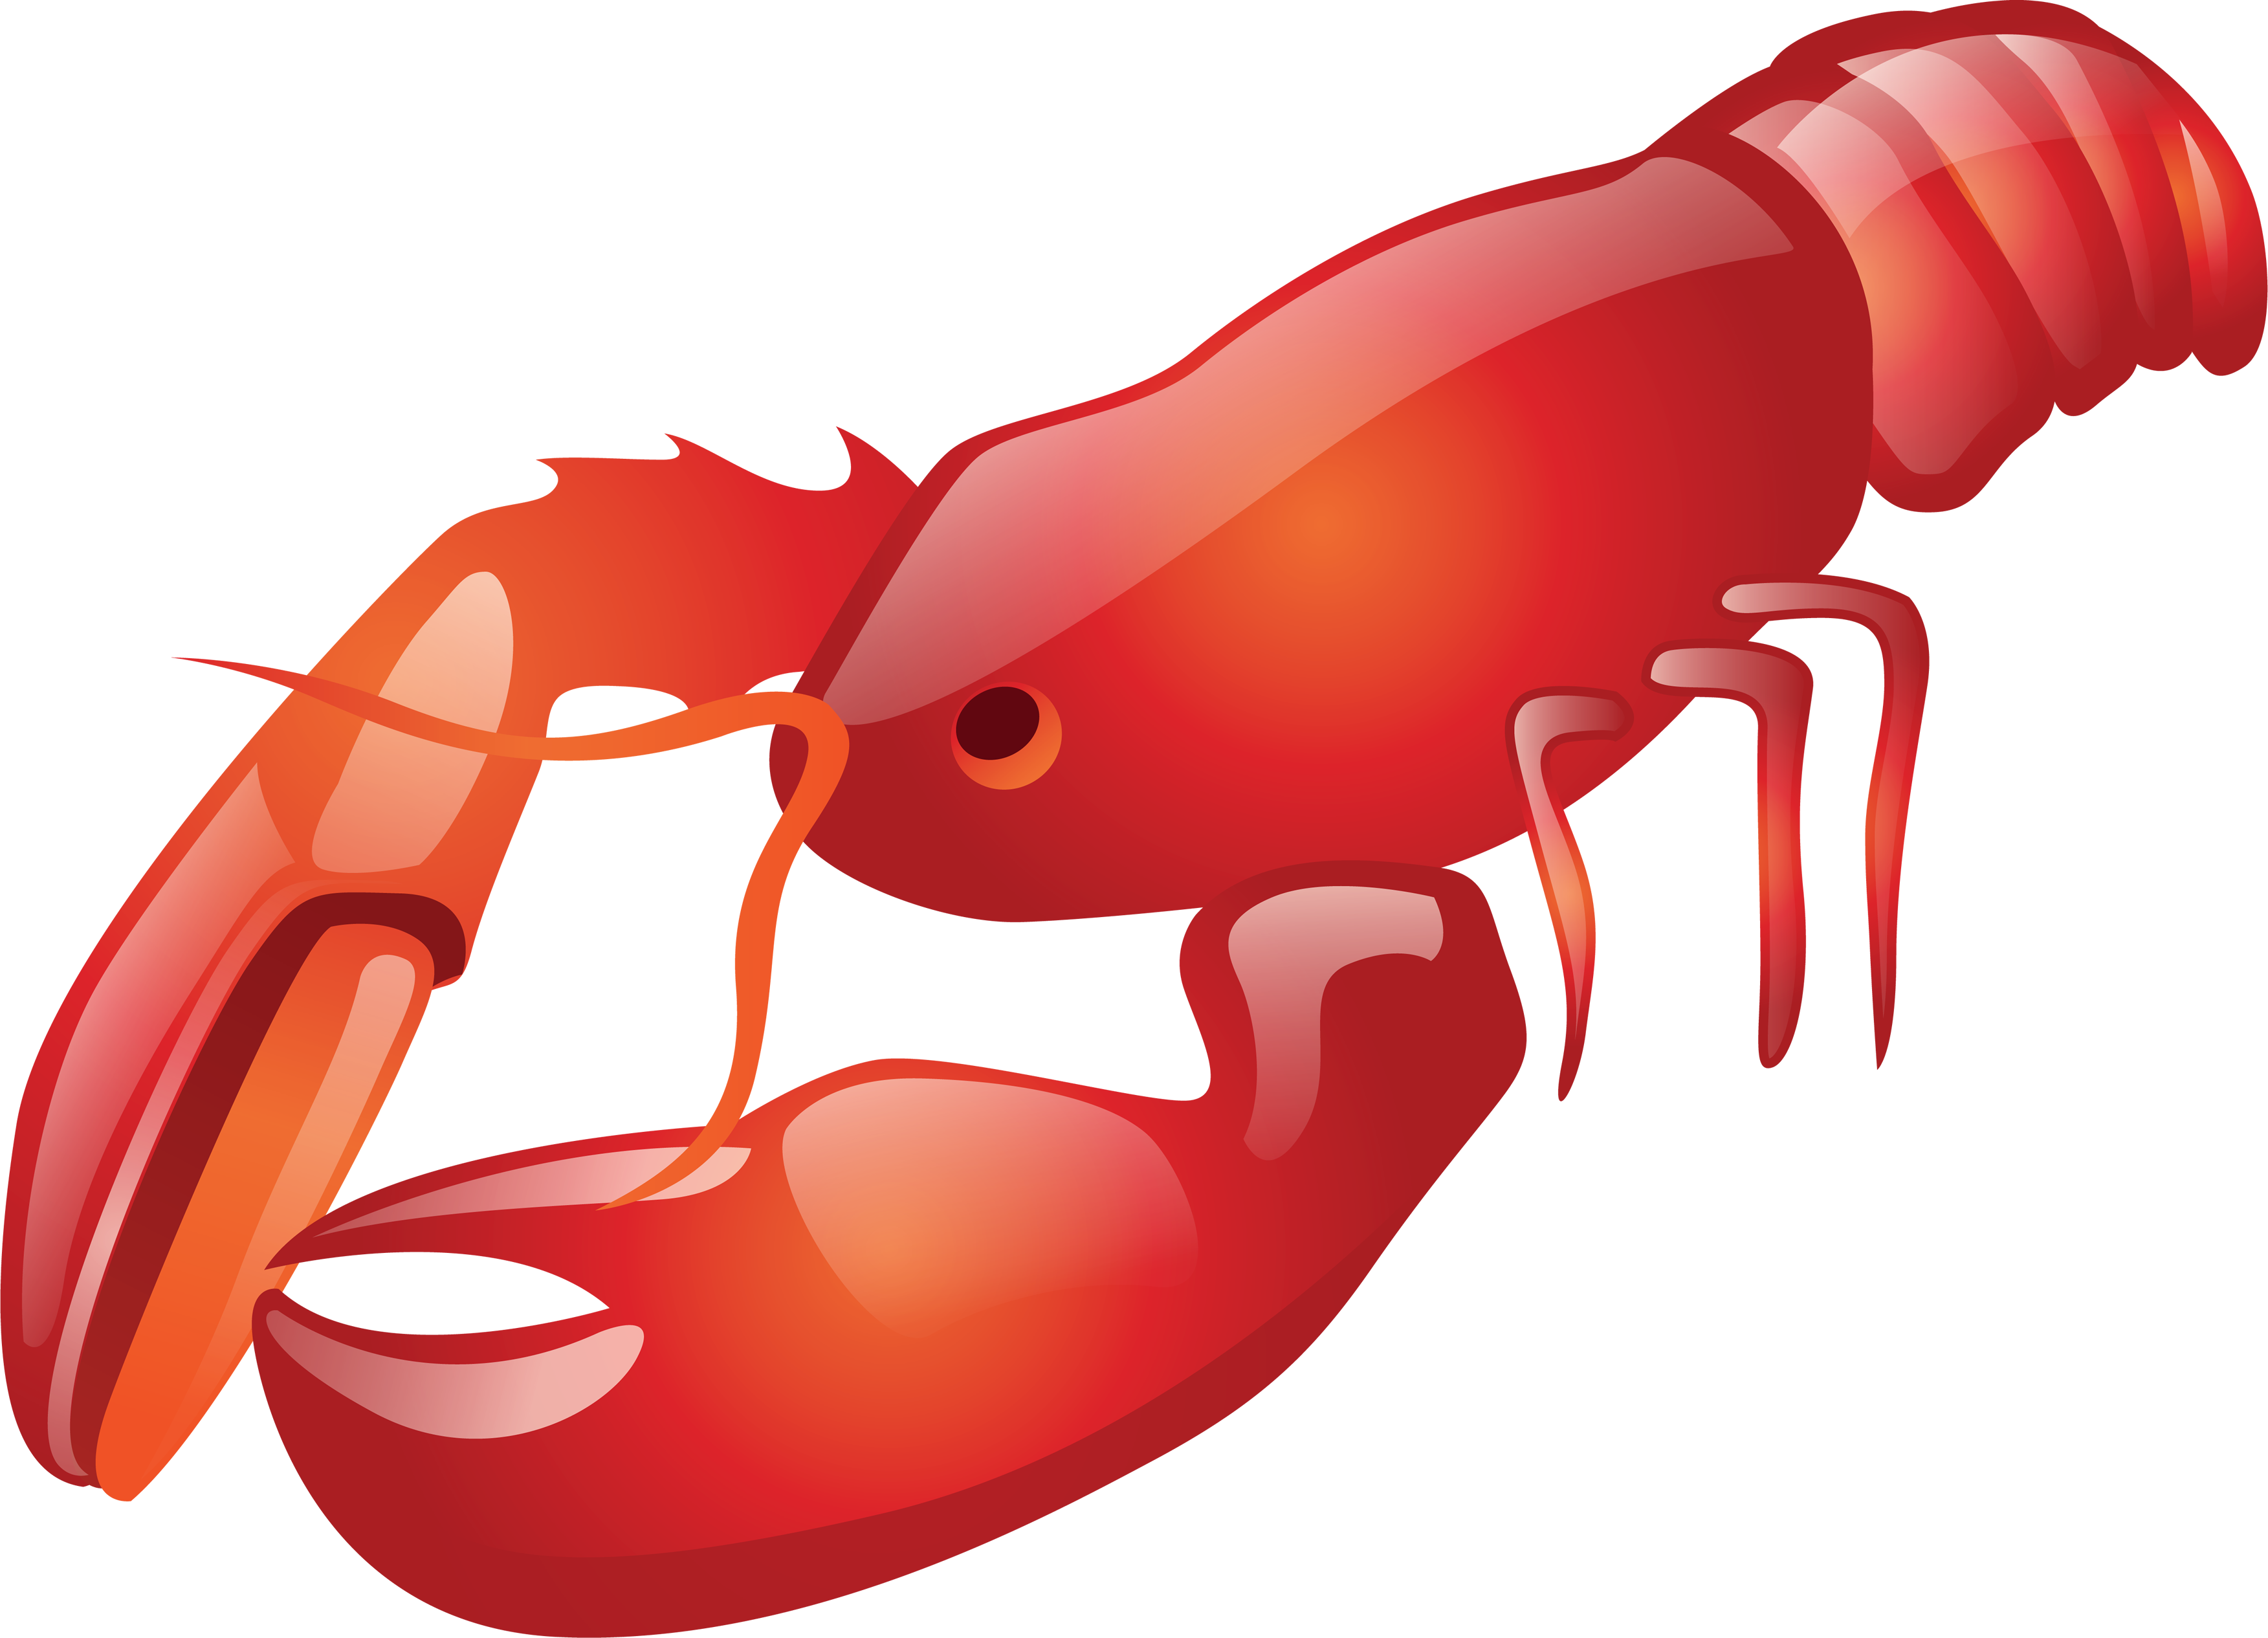 Lobster clipart #6, Download drawings